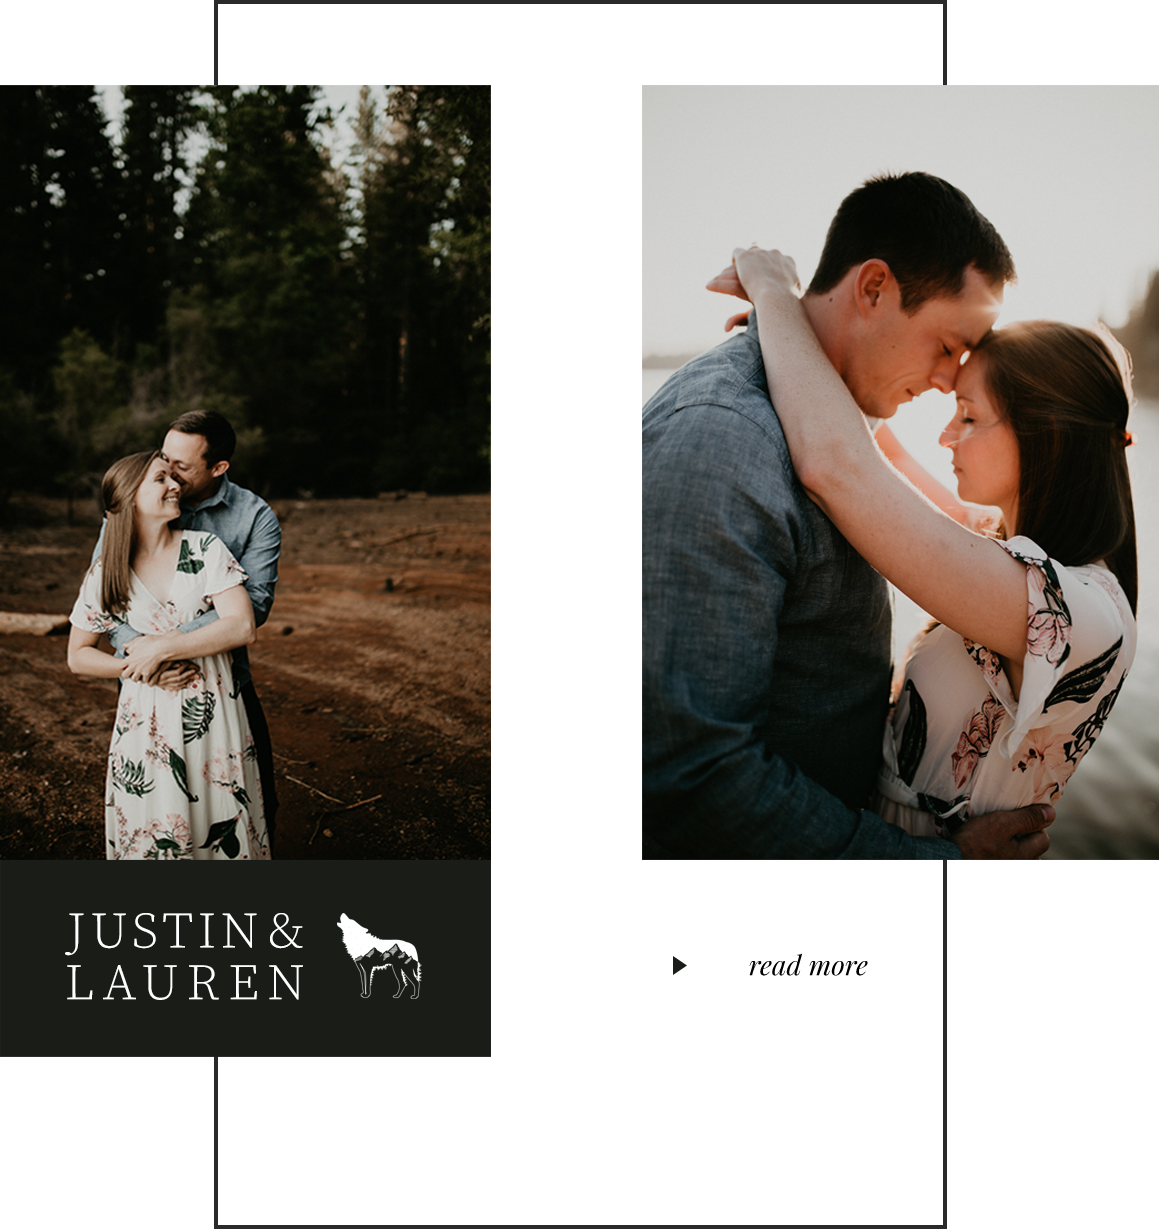 Justin-Lauren-Photography-About.png